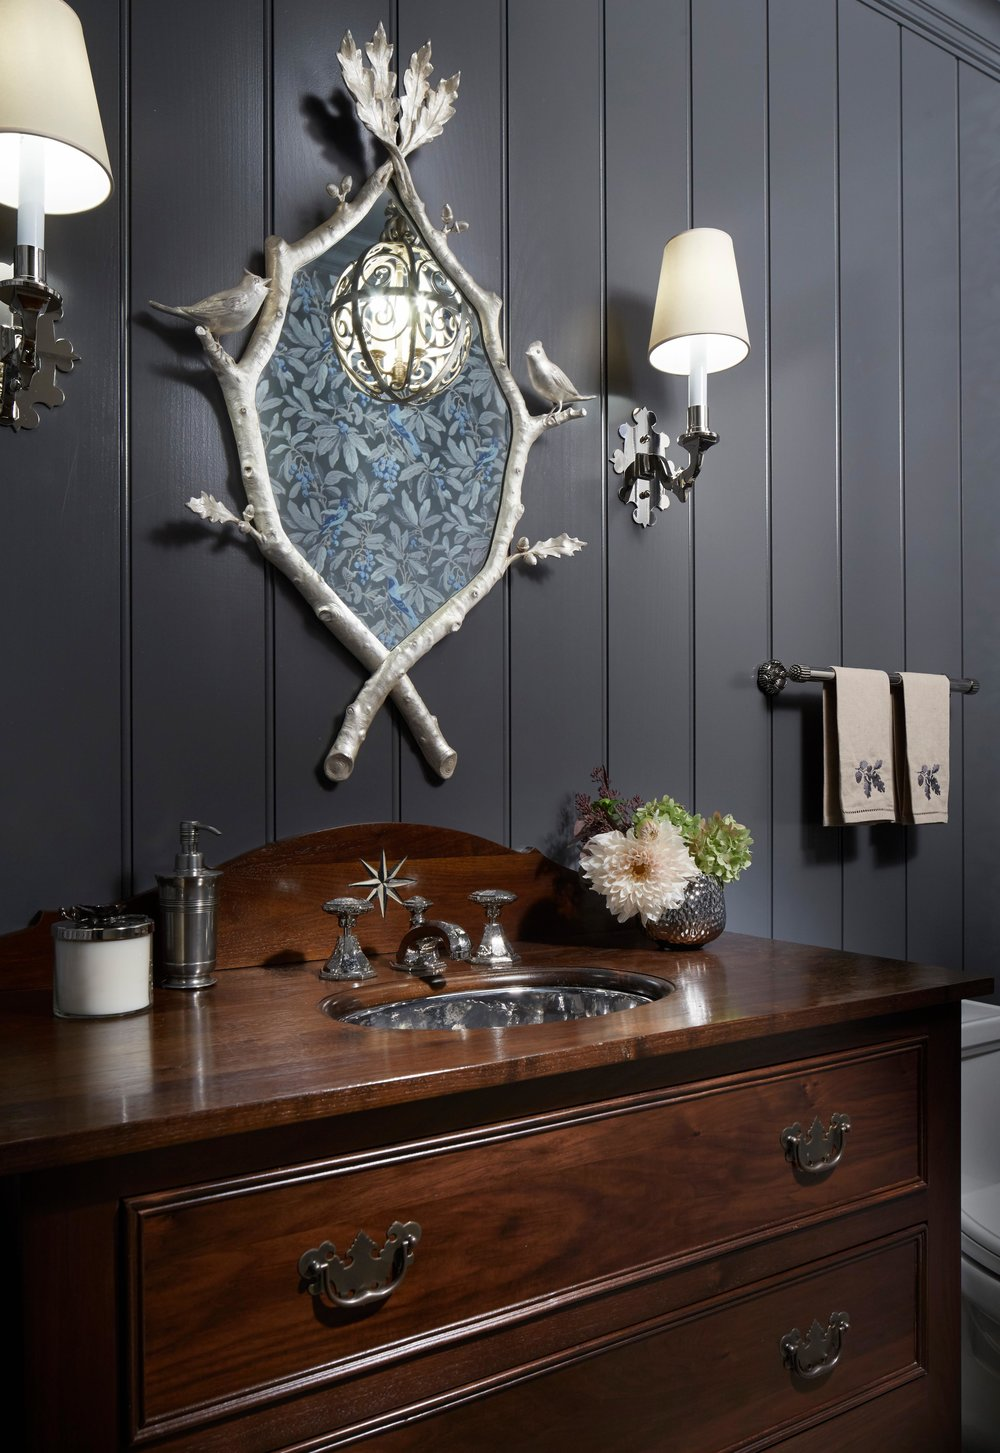 Rich dark painted paneling and wood vanity in a bathroom. Come see more interior design inspiration from Elizabeth Drake. Photo by Werner Straube. #interiordesign #classicdesign #traditionaldecor #housetour #elizabethdrake